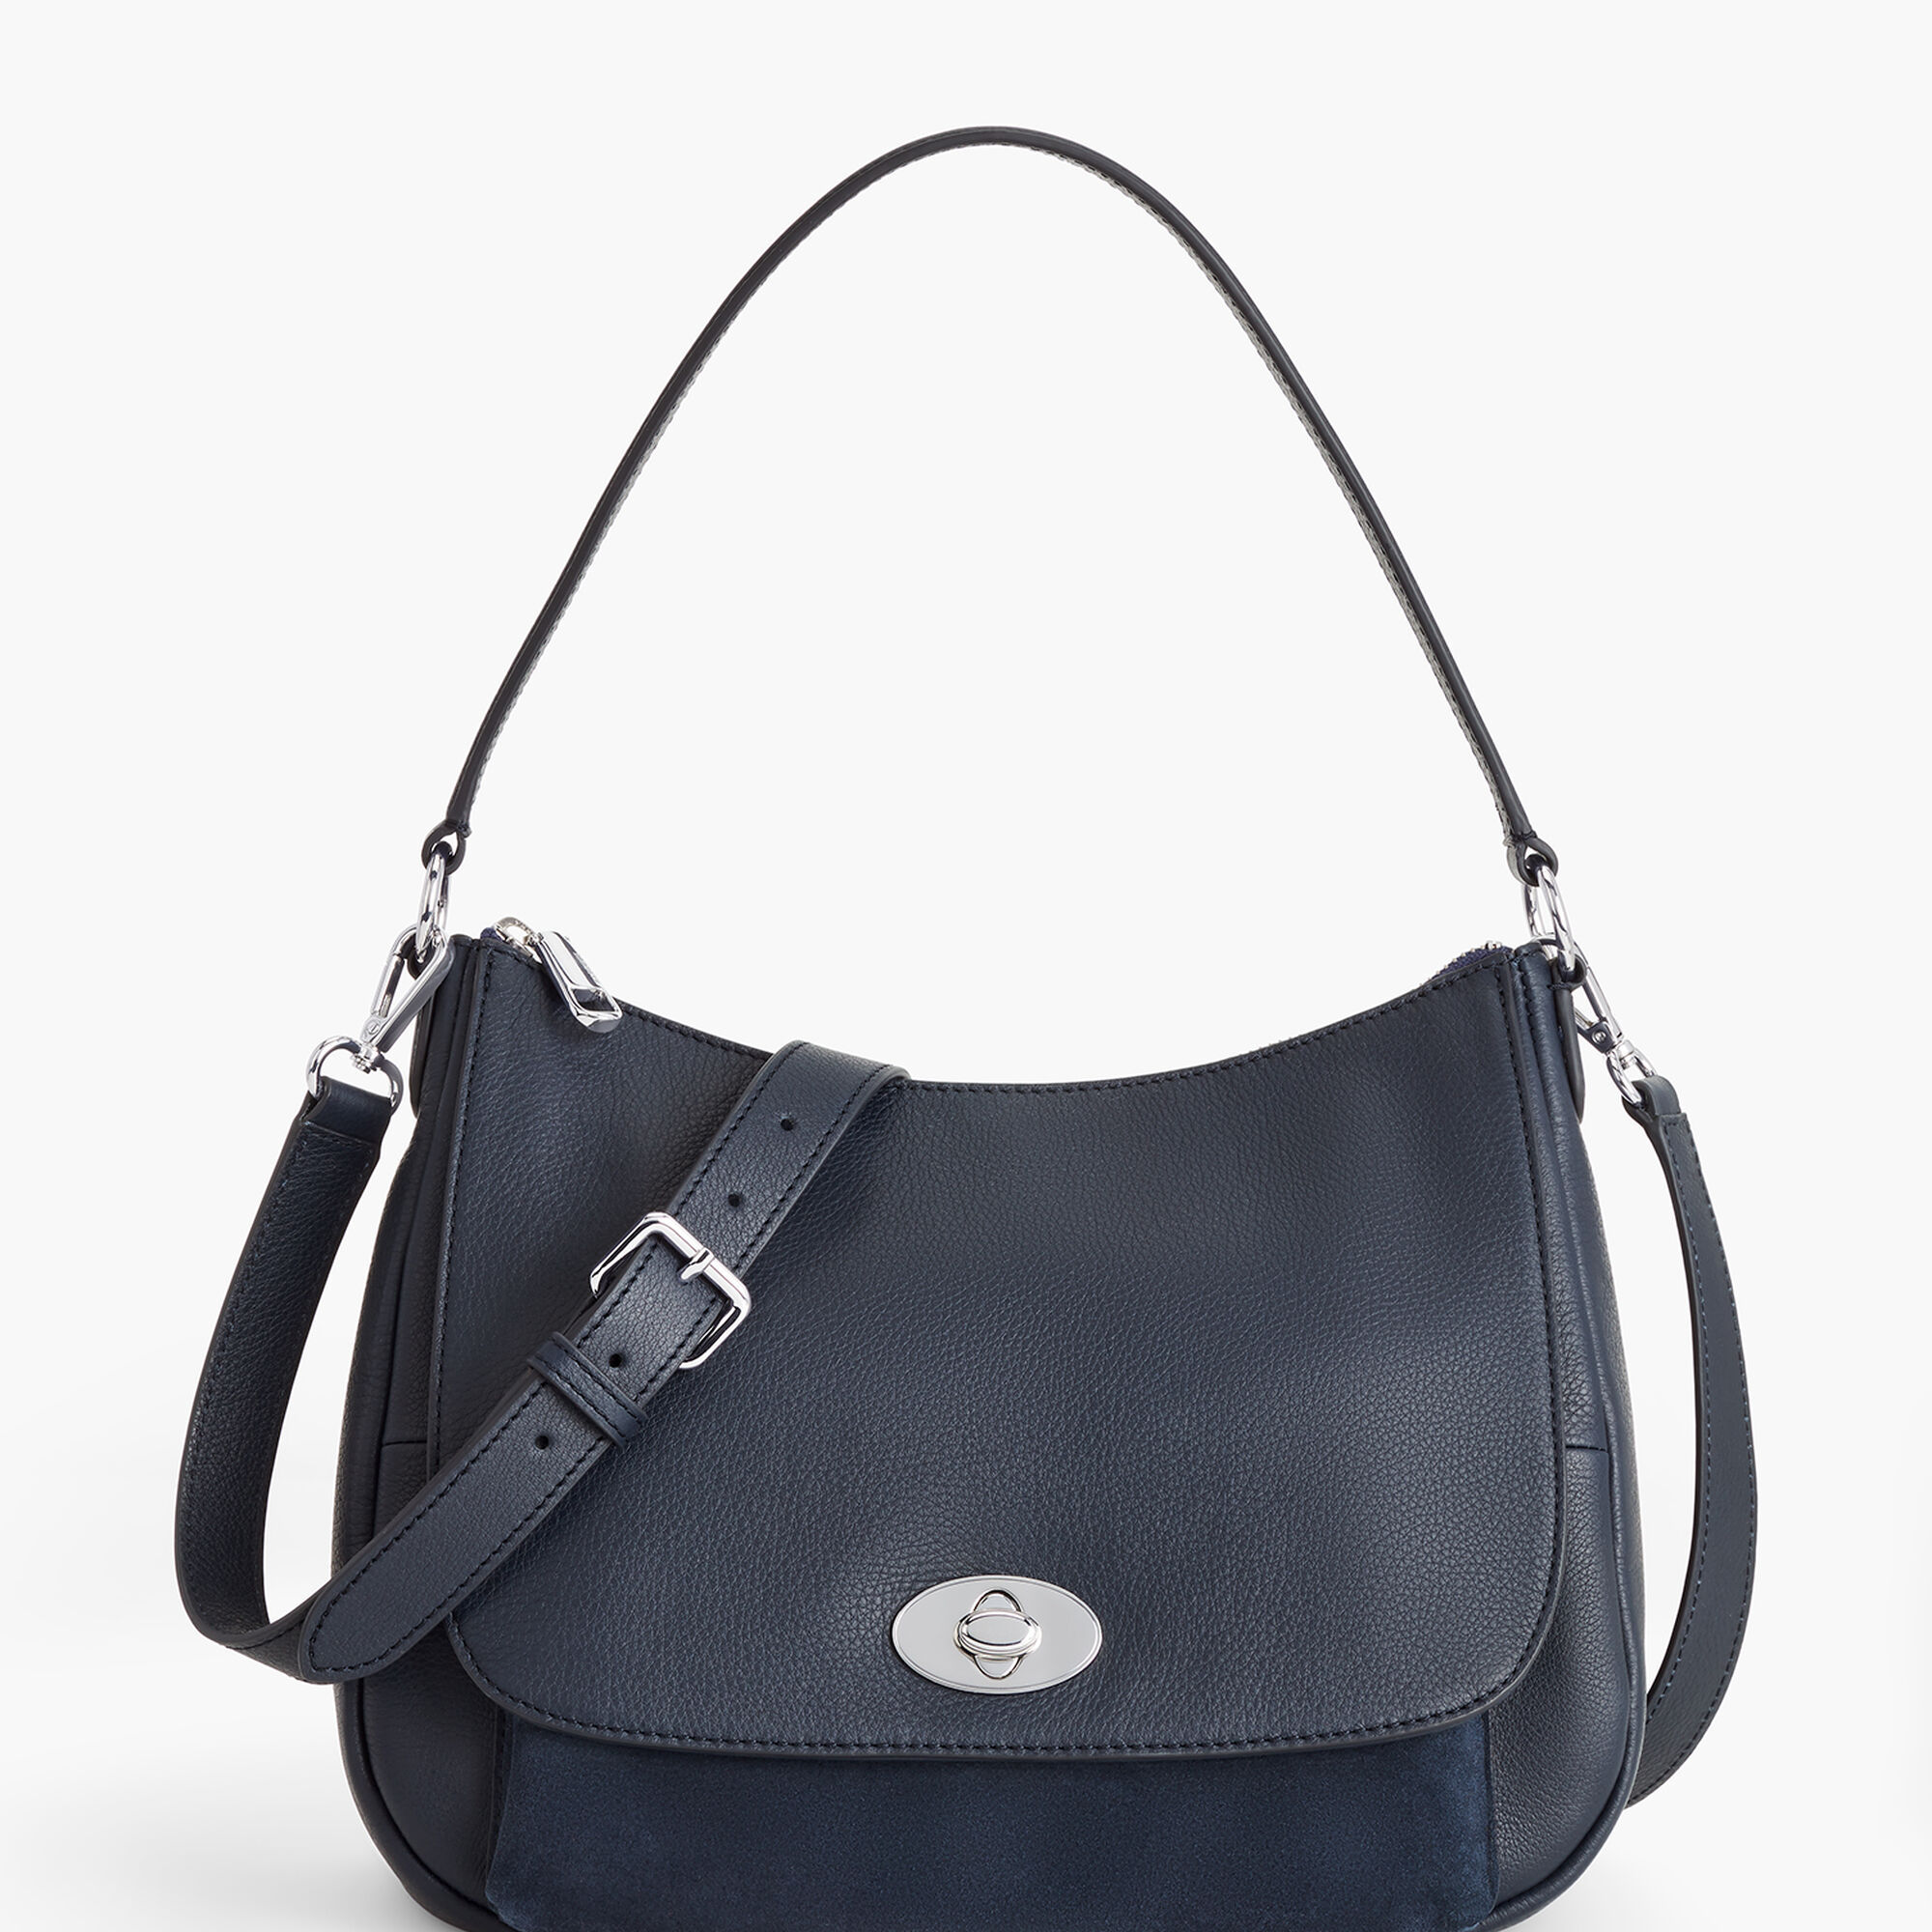 Soft Pebbled Leather Hobo Bag Talbots